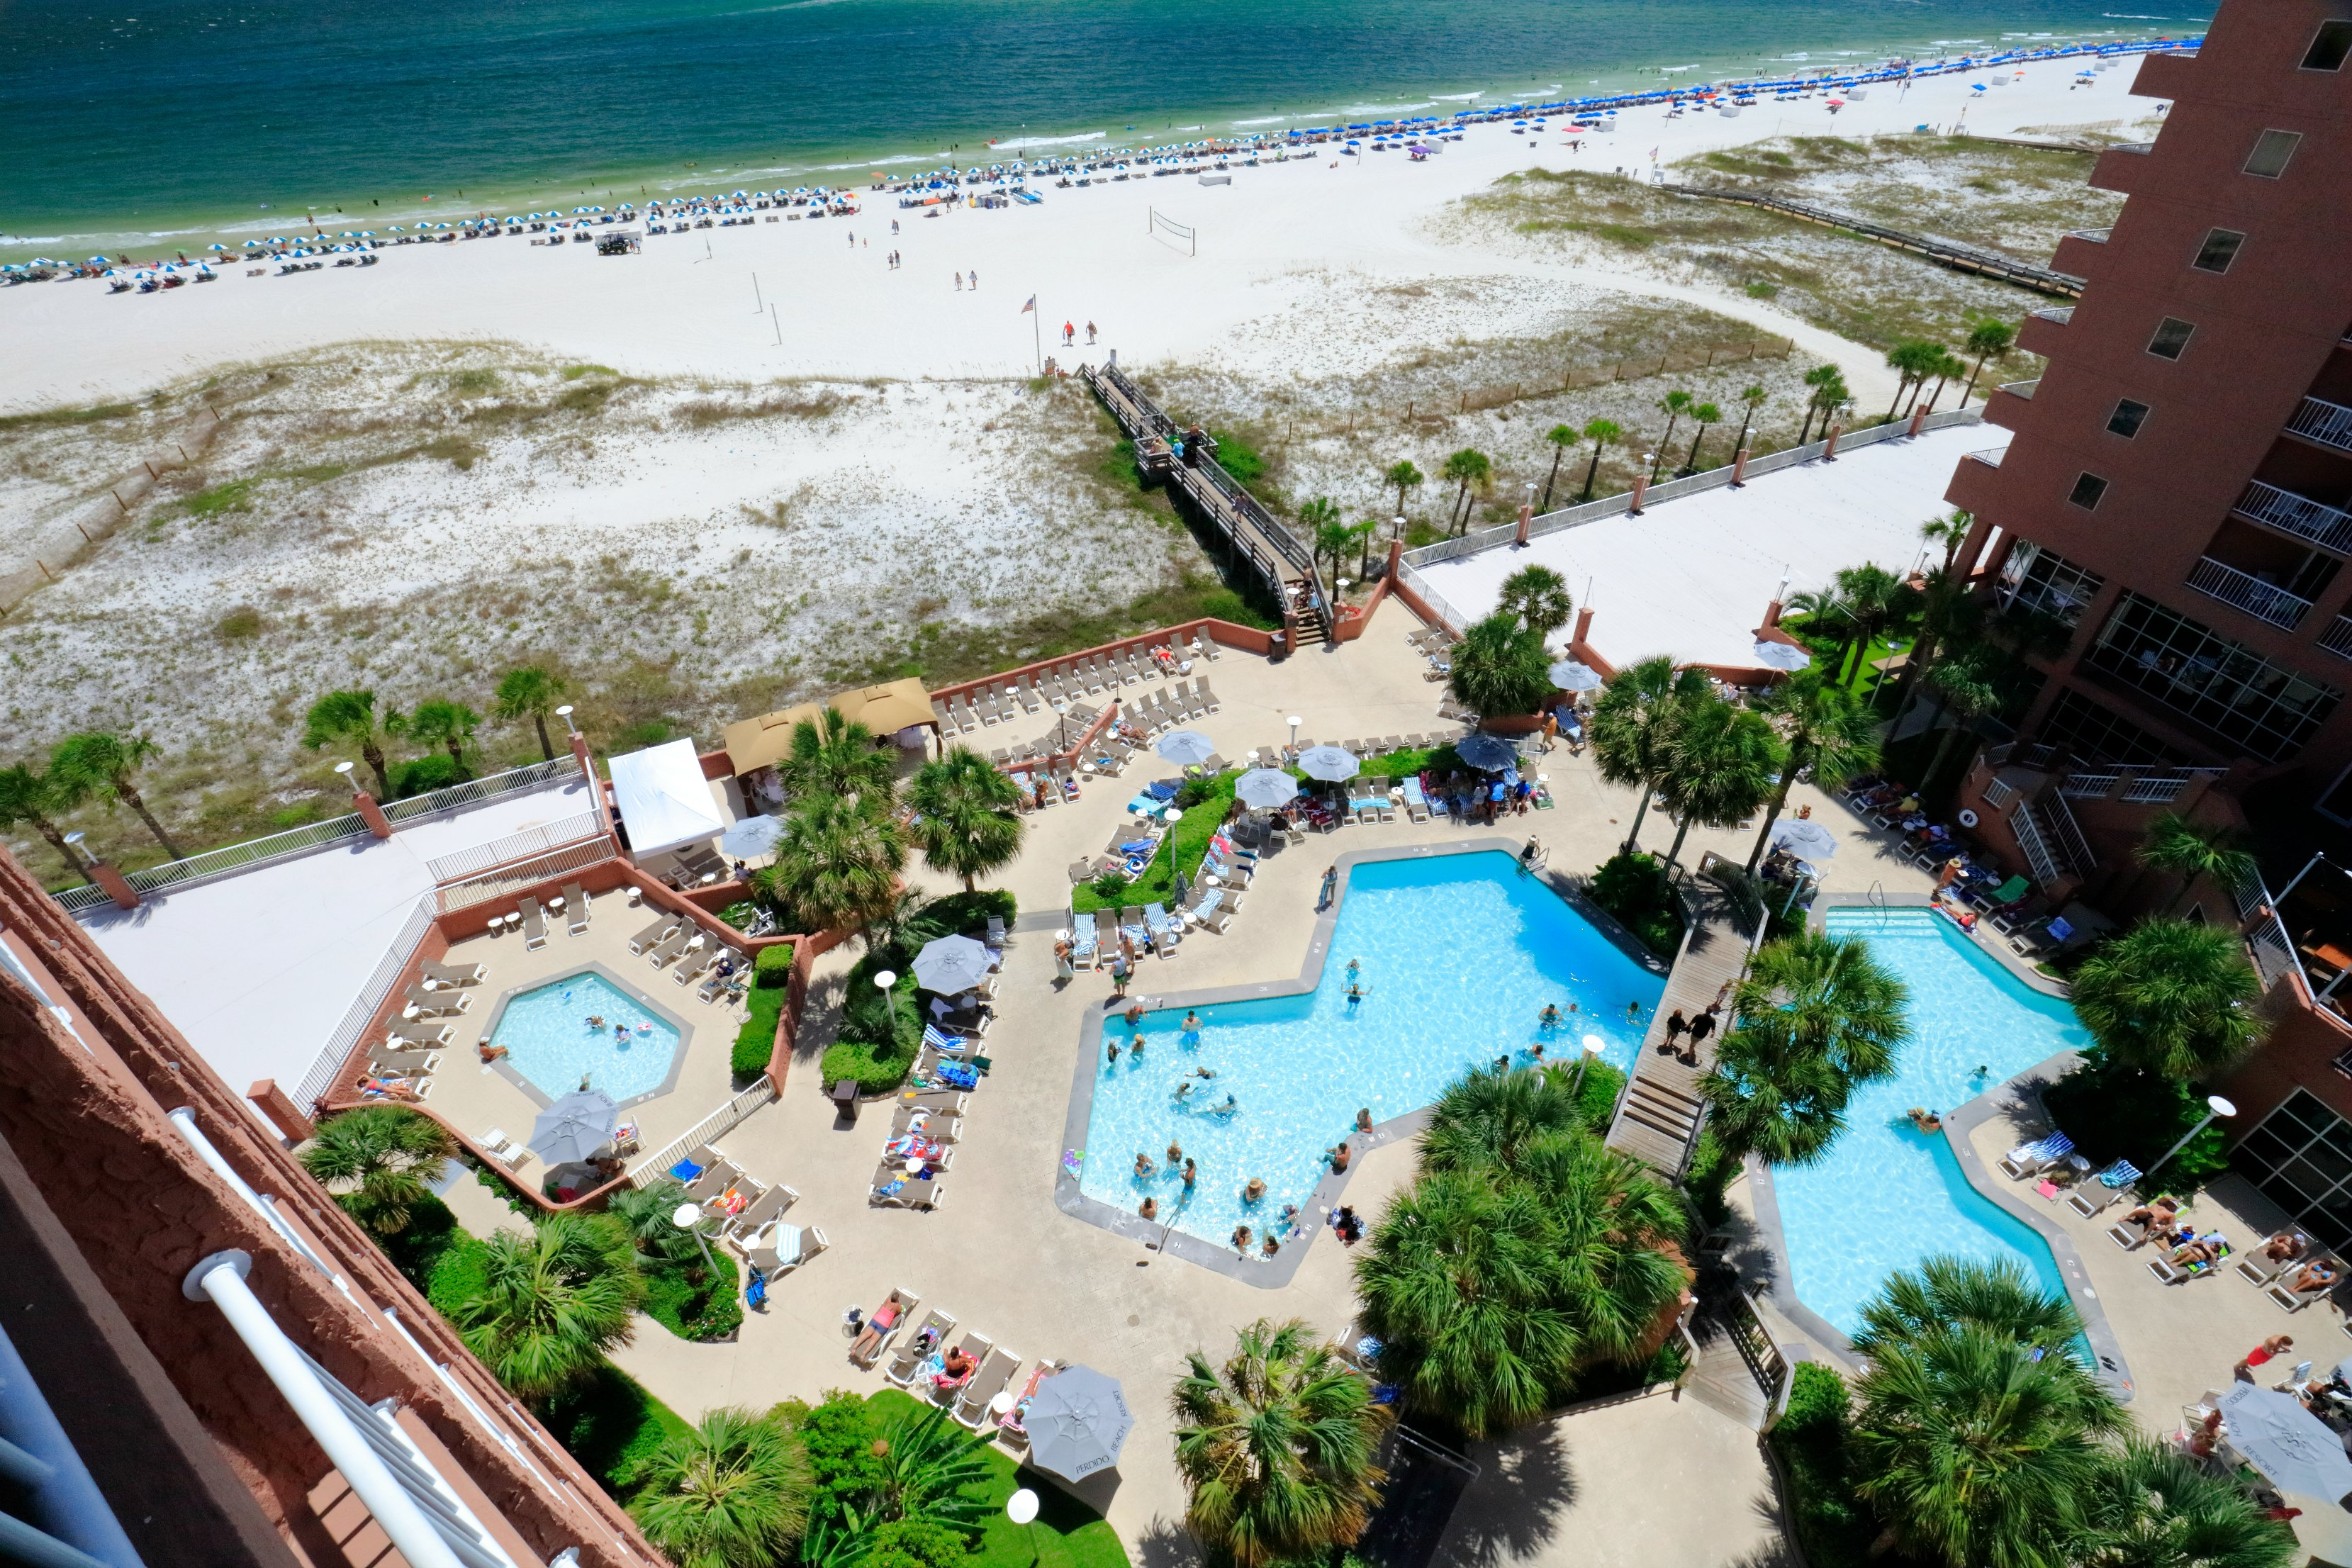 Perdido Beach Pool View Room featuring great view of the pool deck